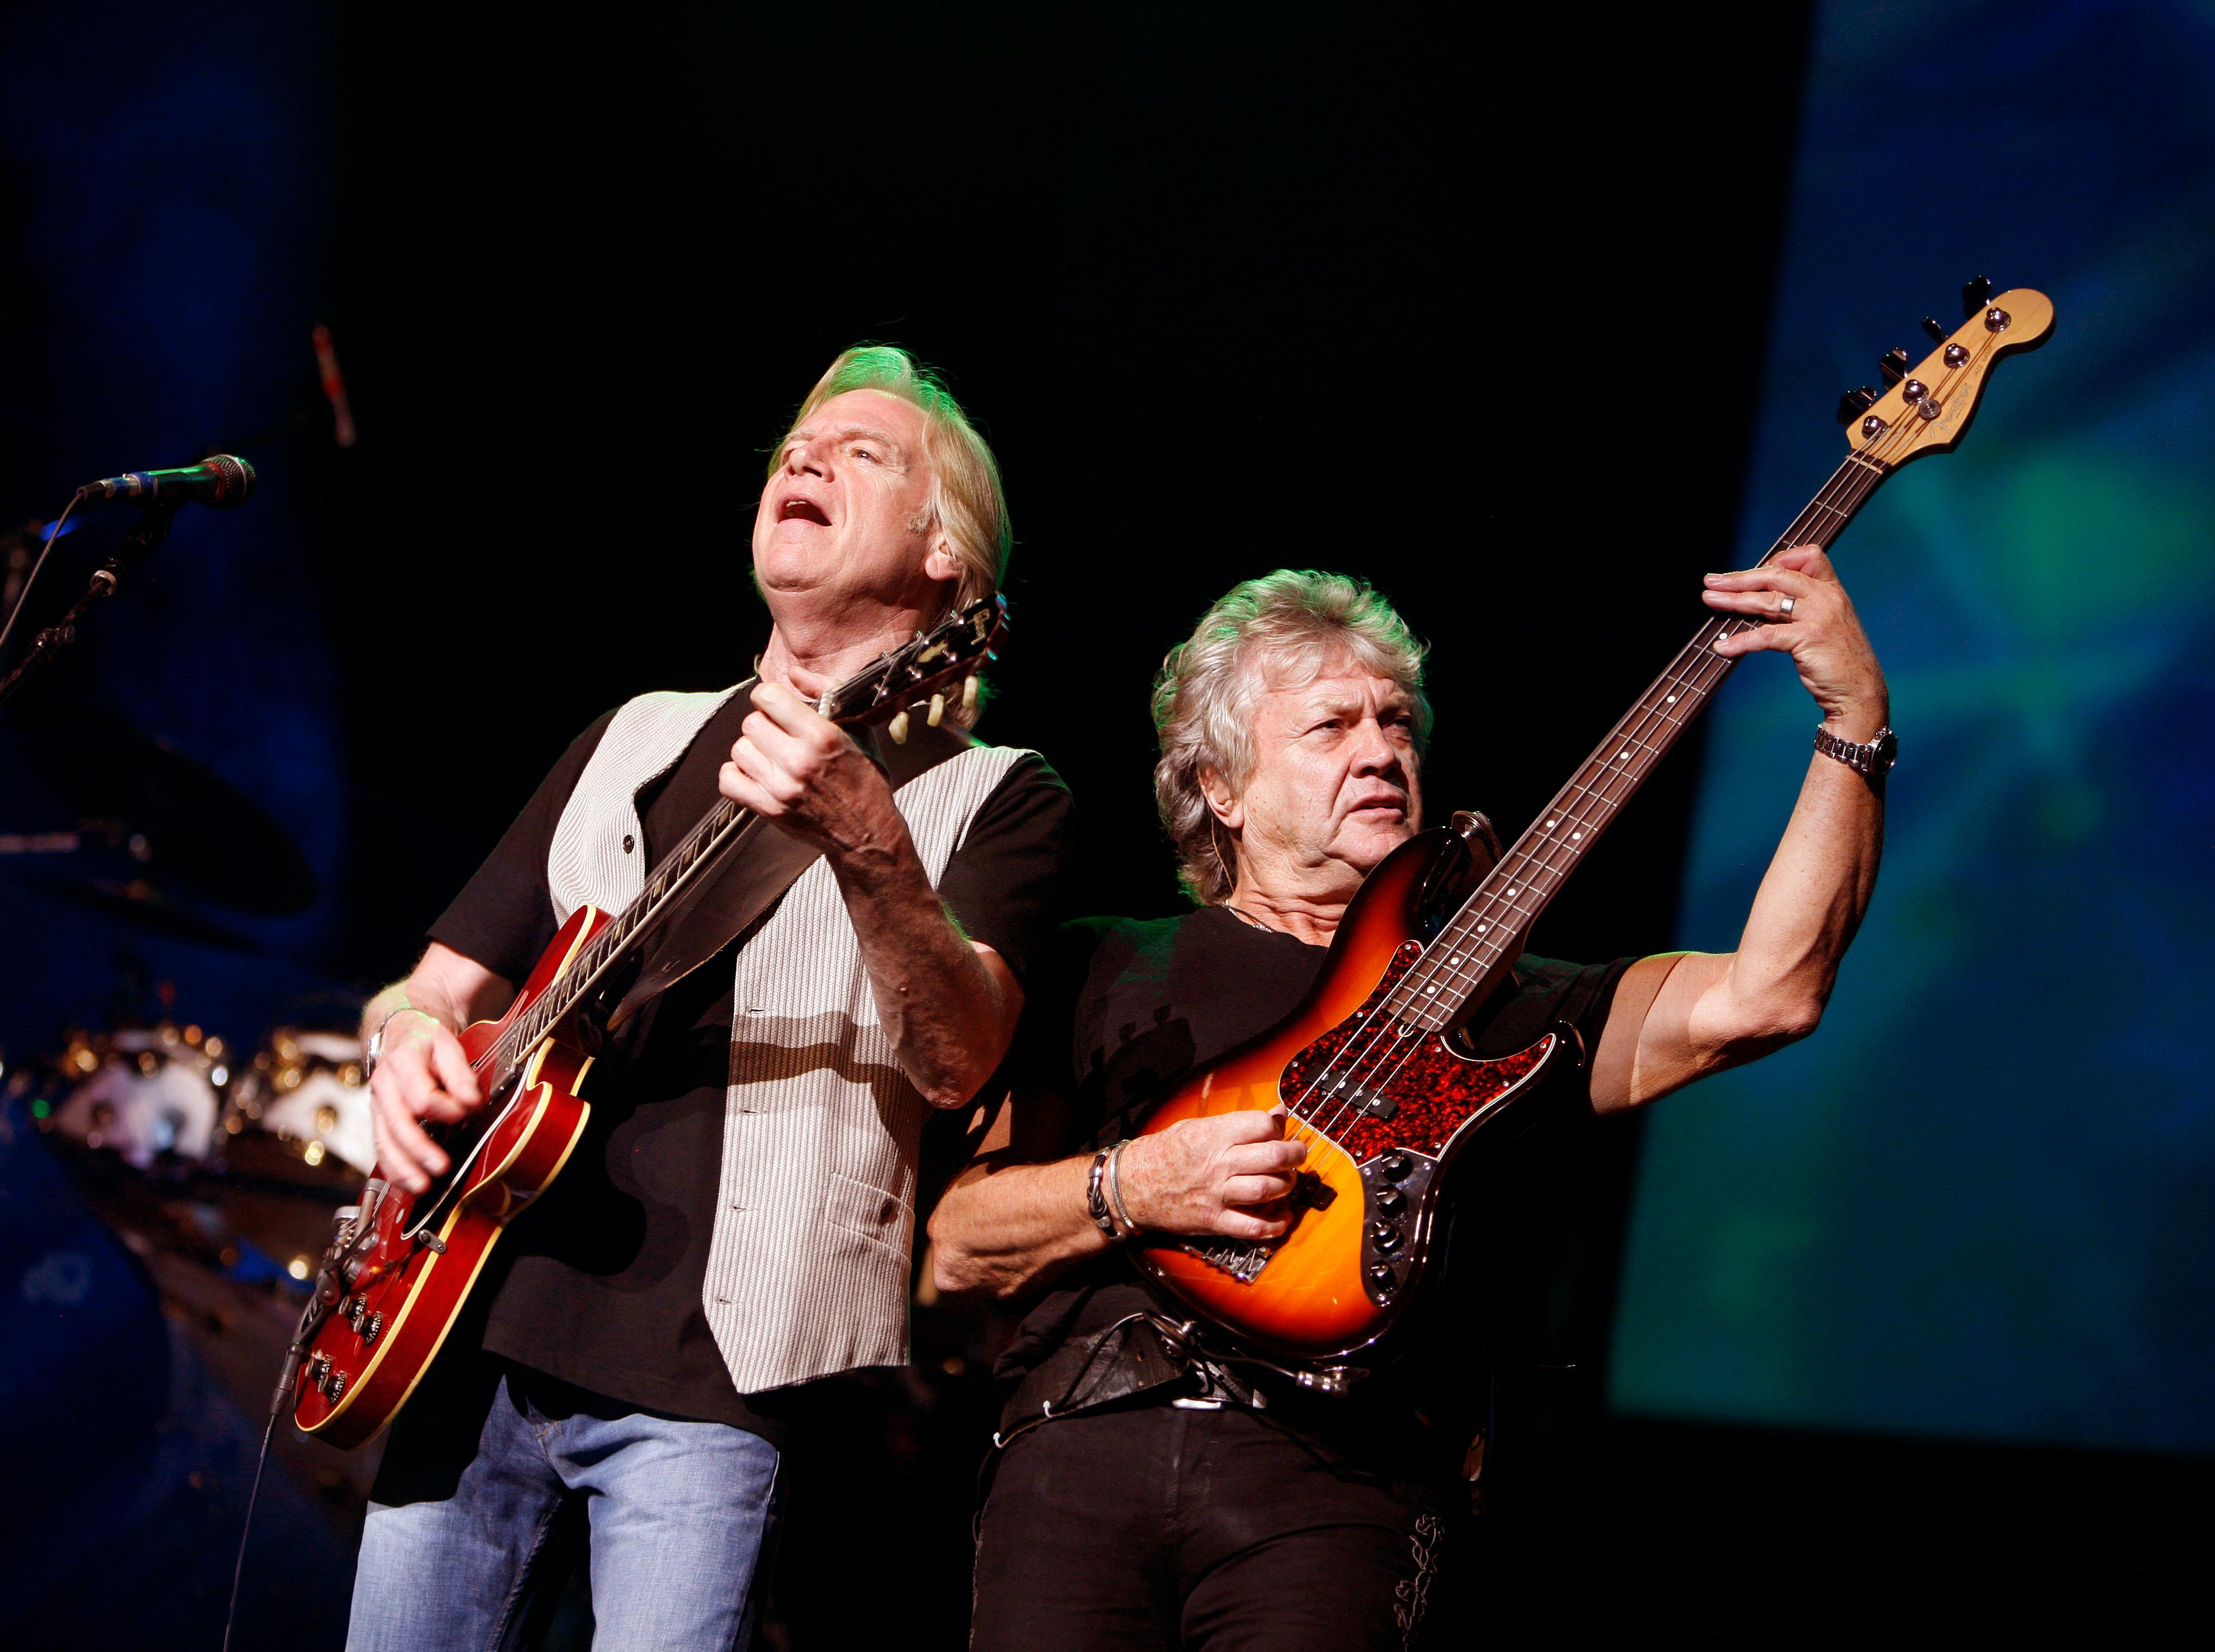 FILE - In this Aug. 20, 2009, file photo, guitarist Justin Hayward, left, and bassist John Lodge of The Moody Blues perform at Radio City Music Hall in New York. The Moody Blues will be inducted to the Rock and Roll Hall of Fame on April 14, 2018 in Cleveland, Ohio. (AP Photo/Jason DeCrow, File)